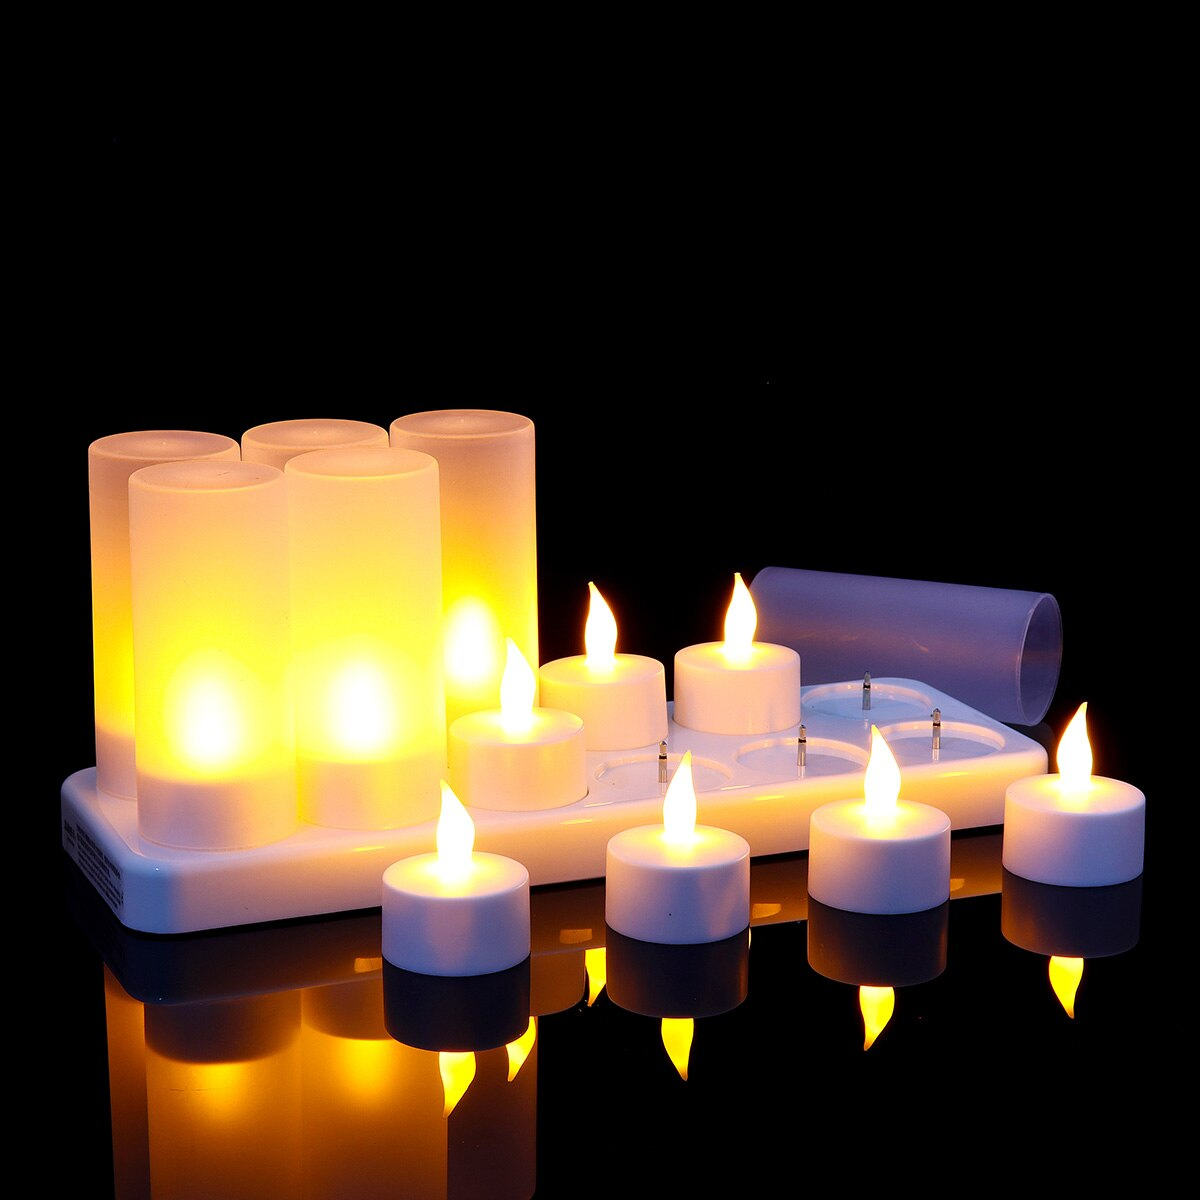 12 Piece Rechargeable Candles